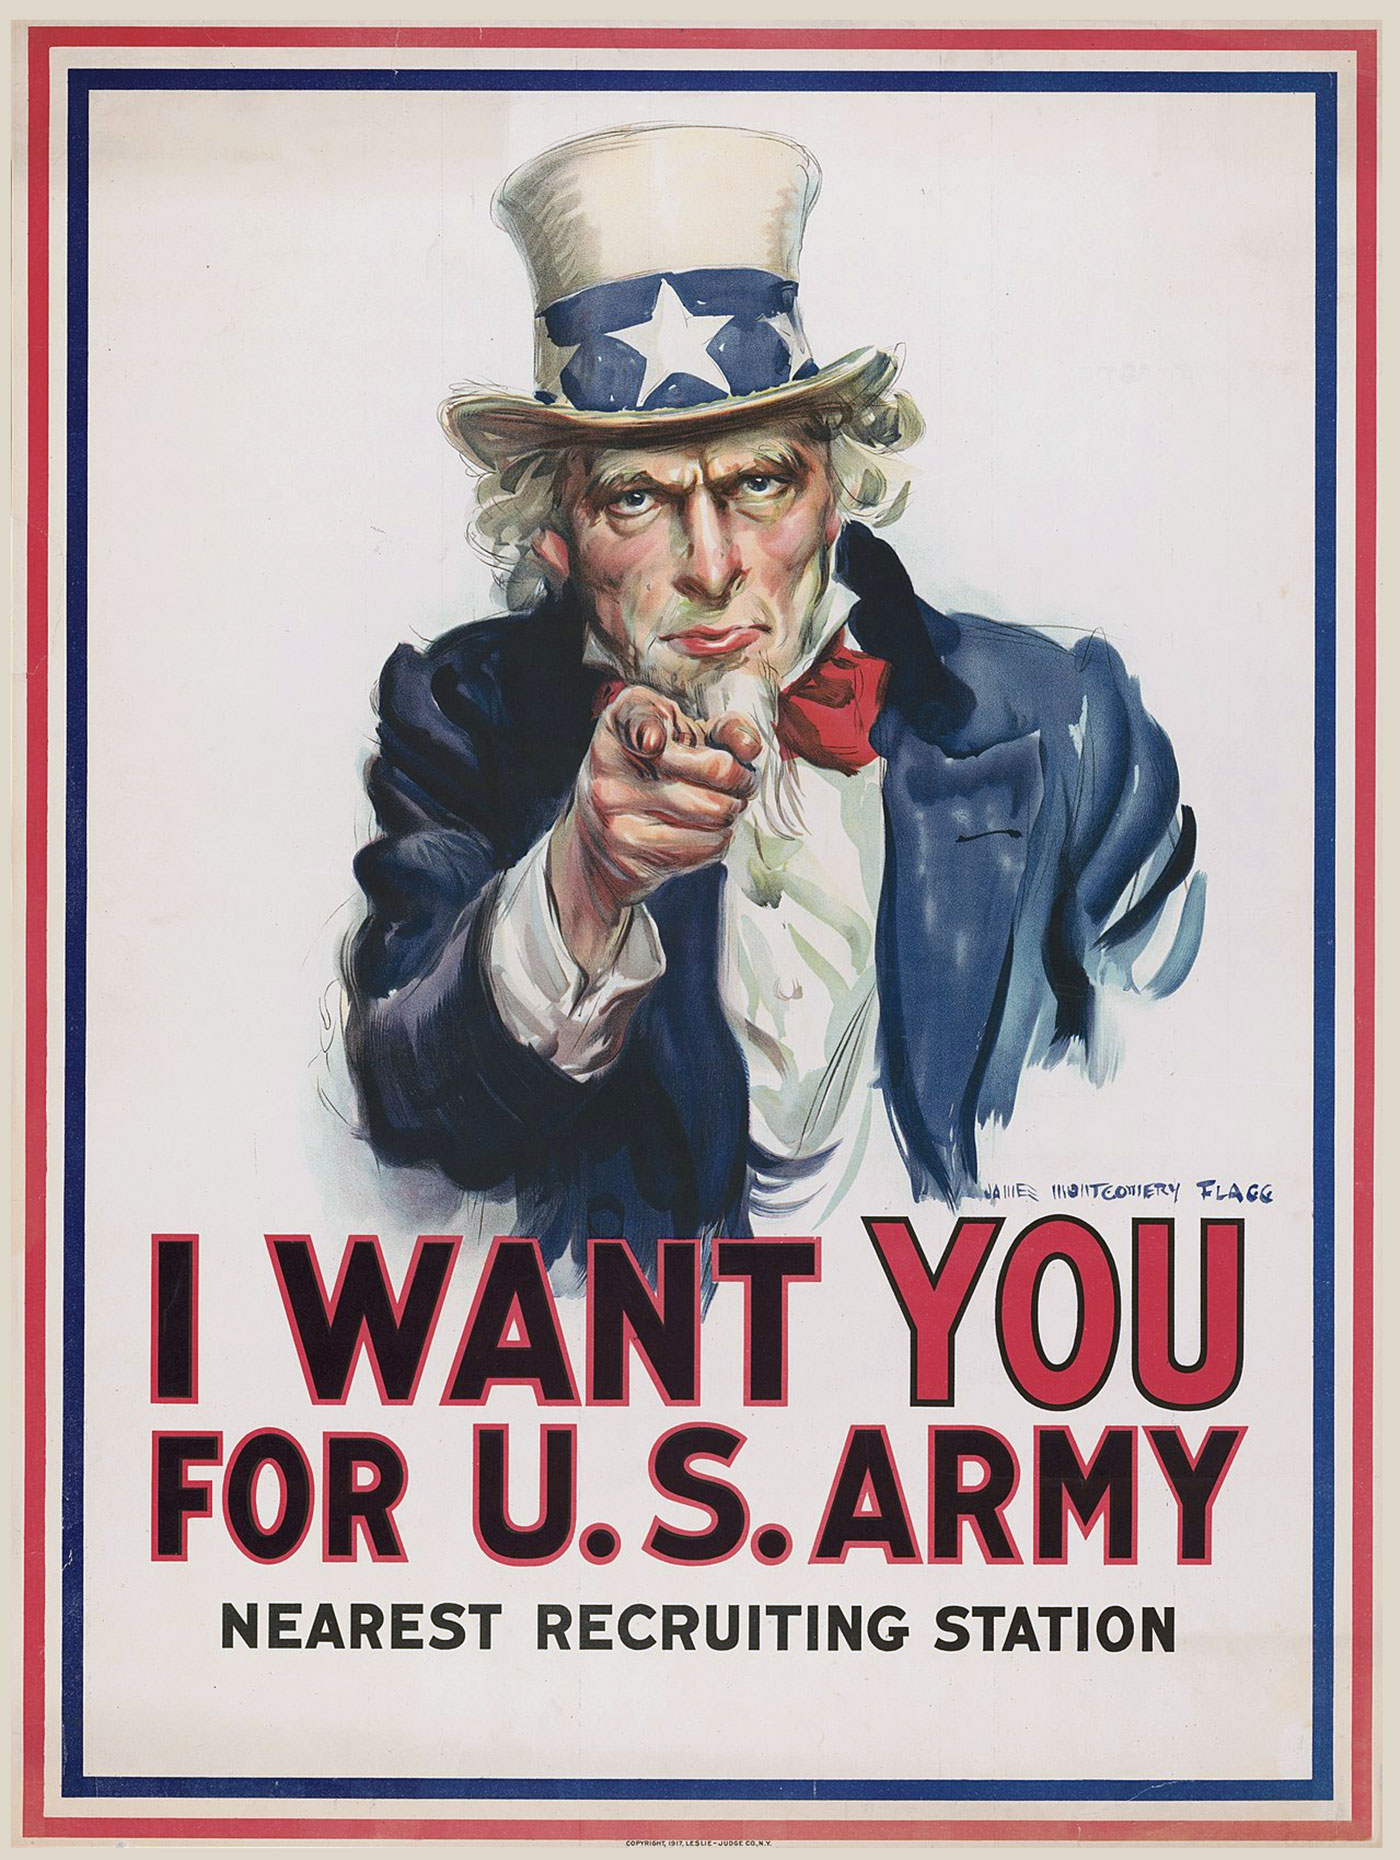 I WANT YOU, poster e manifesto dello Zio Sam (Uncle Sam), simbolo degli Stati Uniti